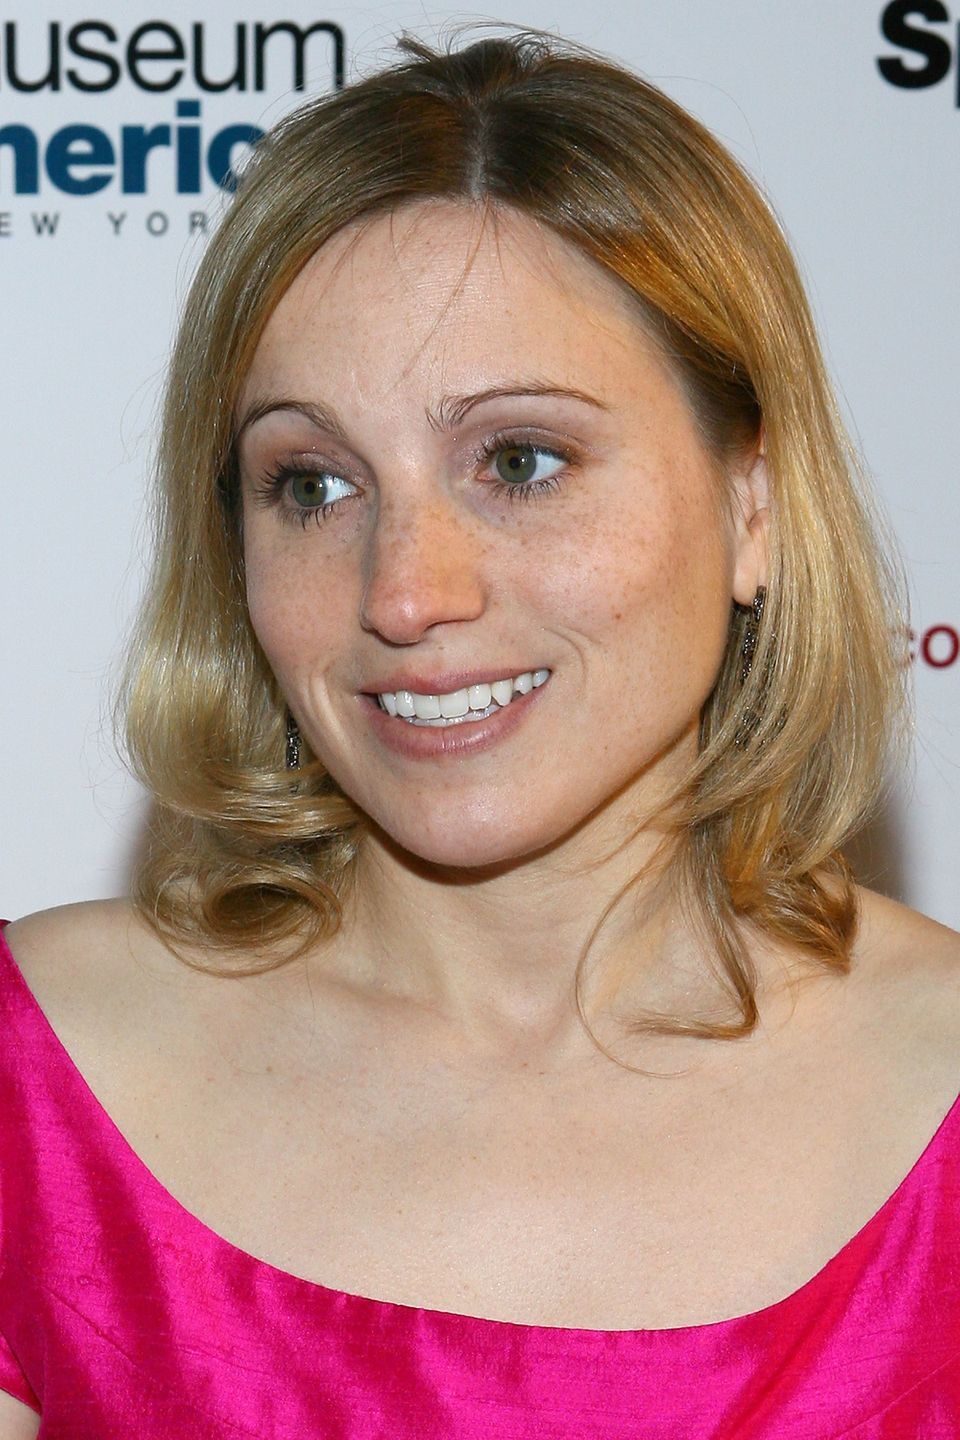 NEW YORK - MAY 06:  Gymnast Kerri Strug attends the Sports Museum of America opening night gala on May 06, 2008 in New York C